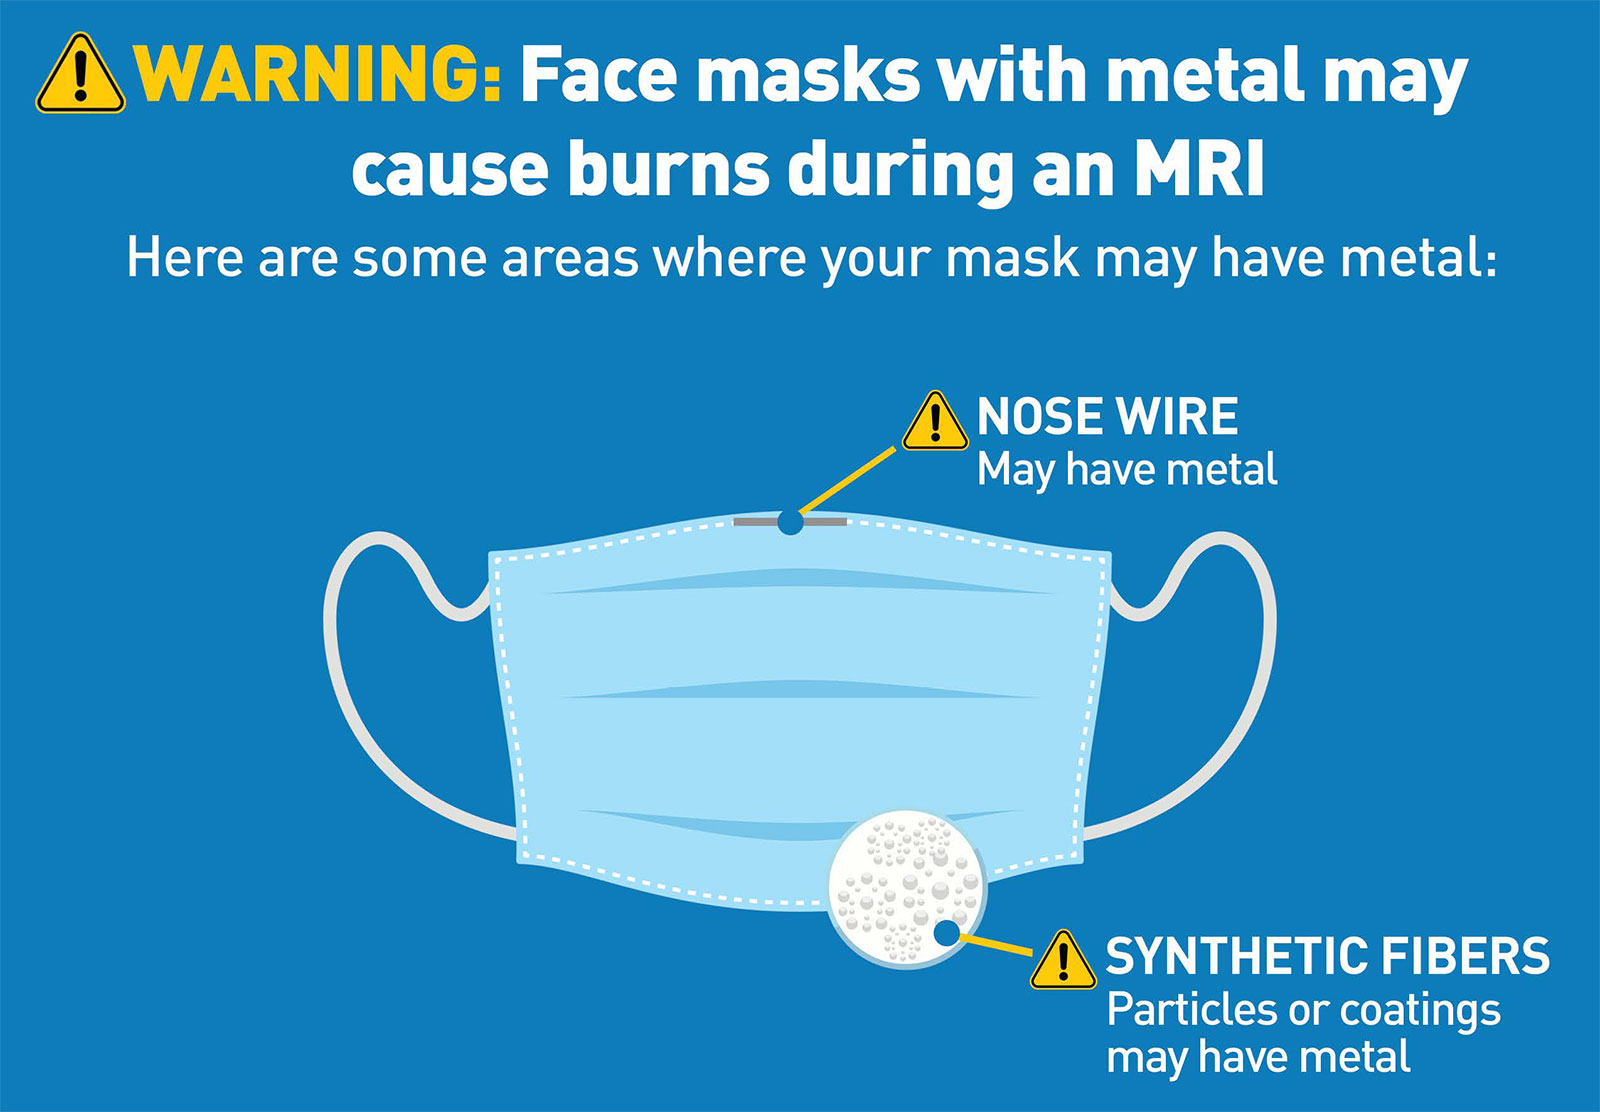 This graphic provided by the FDA warns mask-wearers of the potential metal parts of their masks.